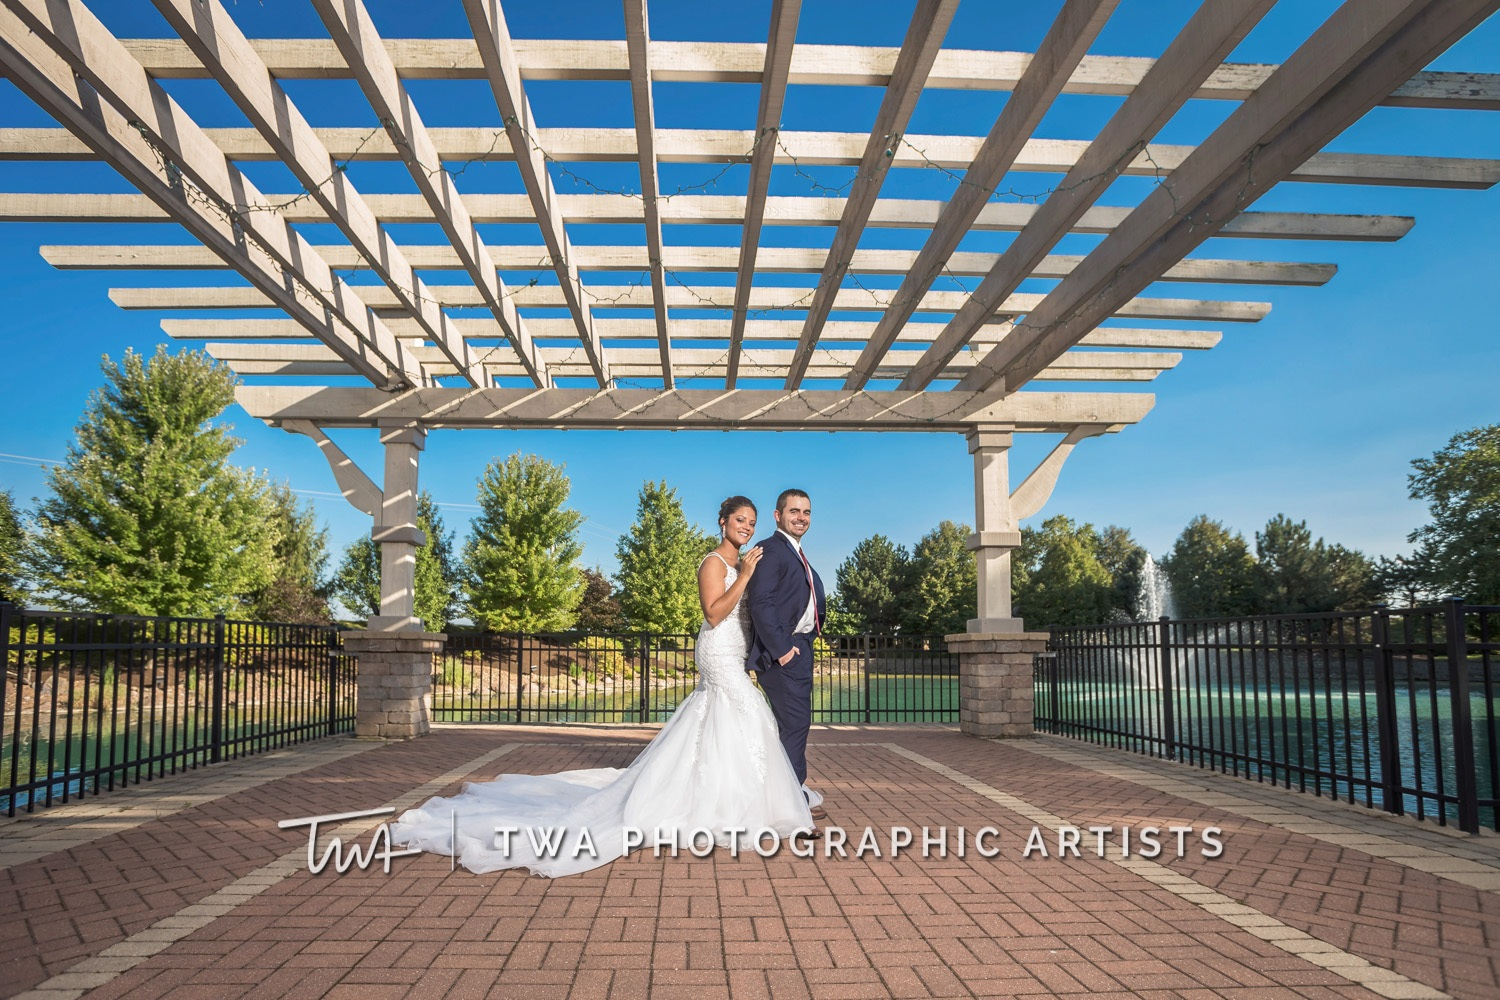 Chicago-Wedding-Photographer-TWA-Photographic-Artists-Cd-and-Me_Rutter_Campione_MC_LB-0394